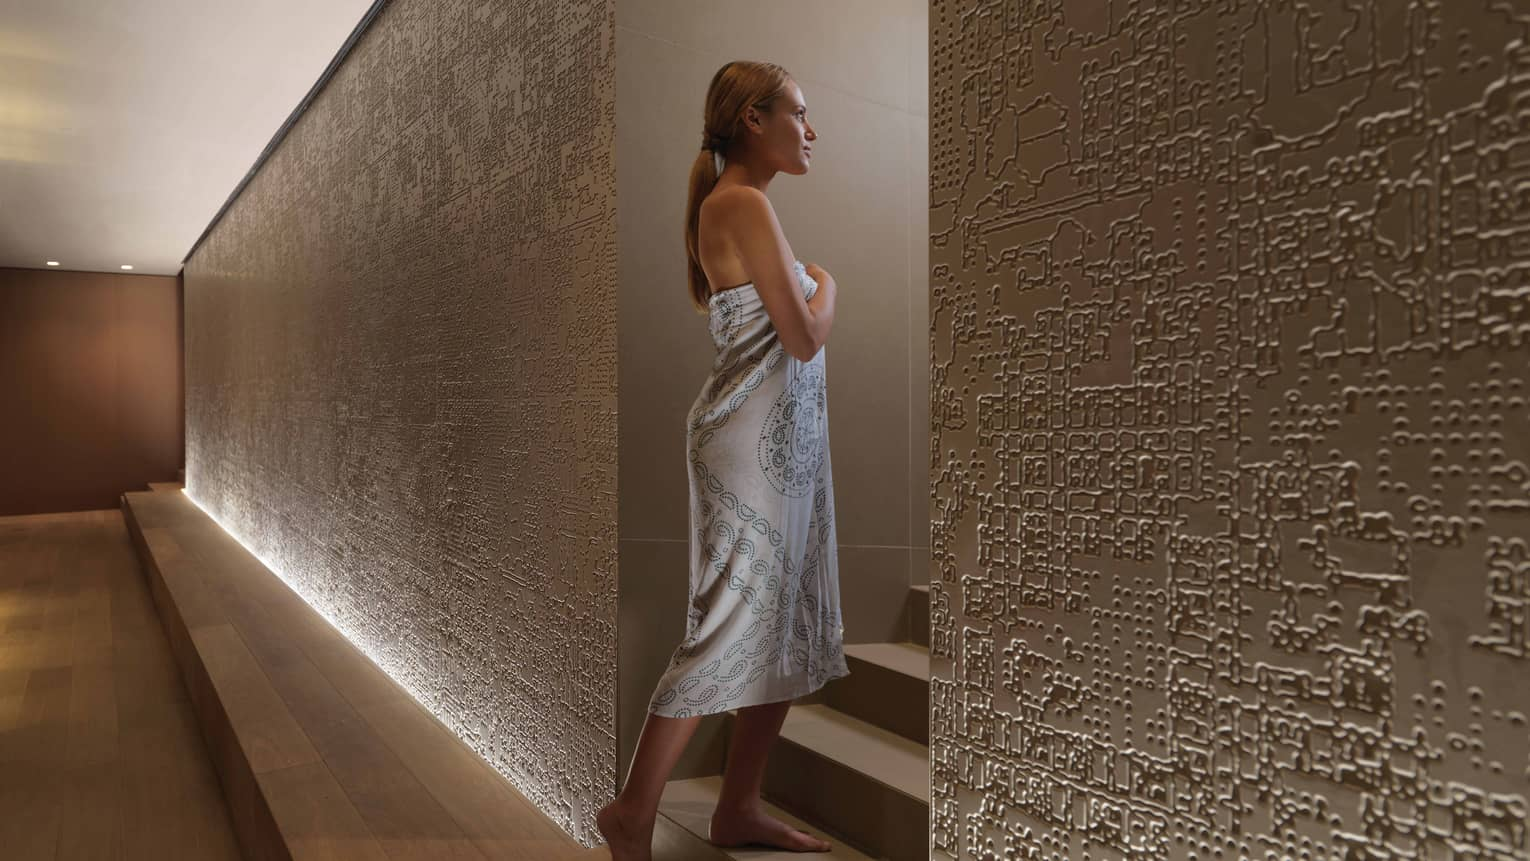 Spa tile walls, woman wrapped in white towel walks up steps to steam room